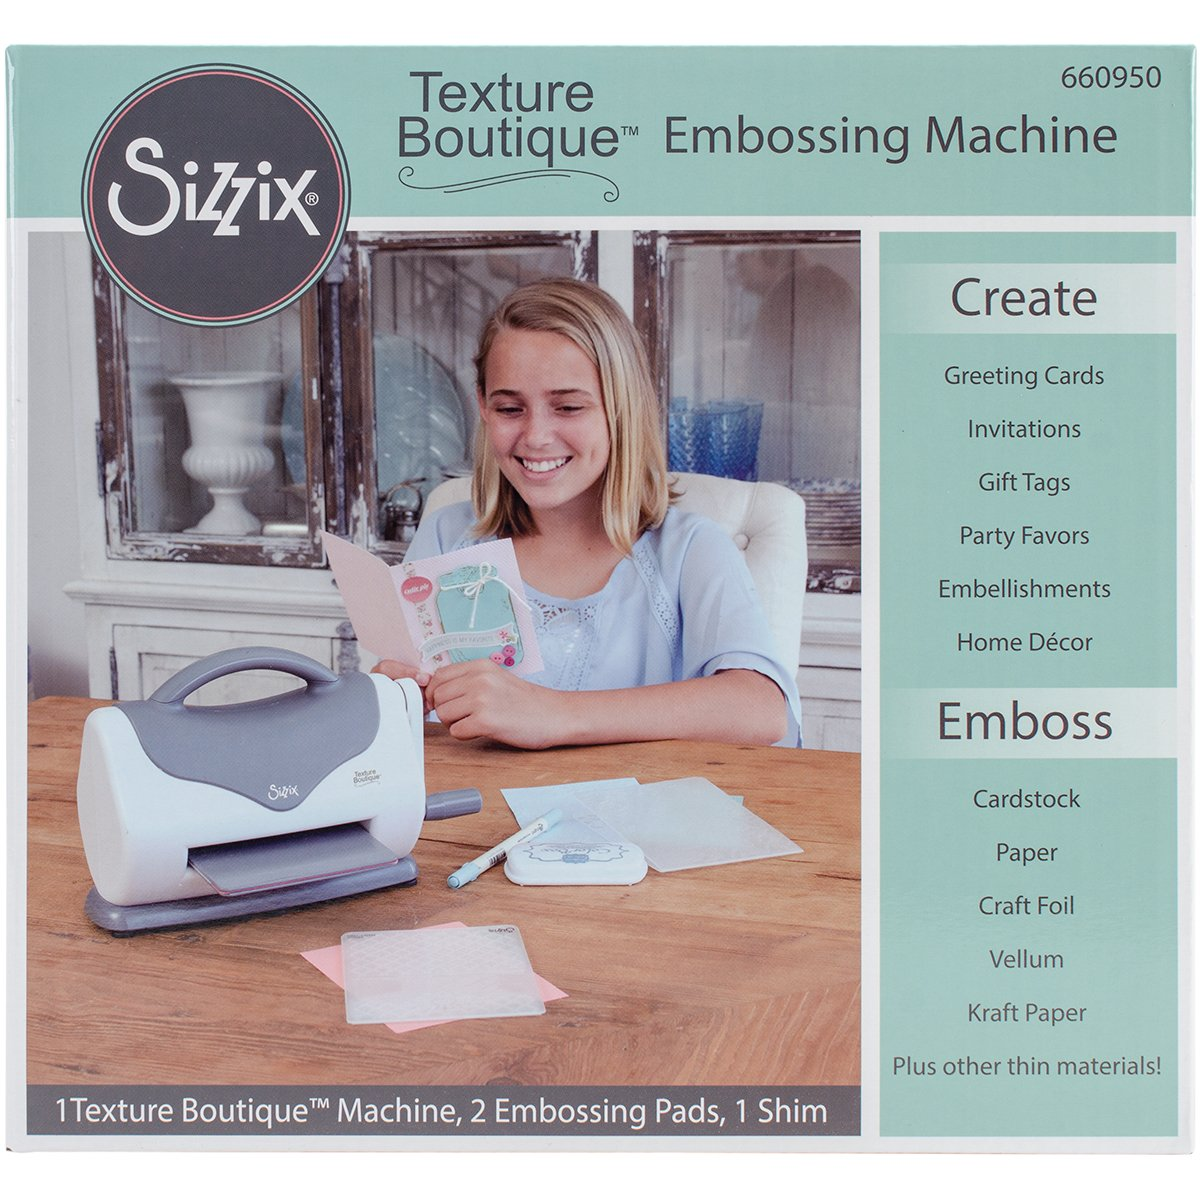 Sizzix 660951 Texture Boutique Embossing Machine Starter Kit, White/Gray Ellison